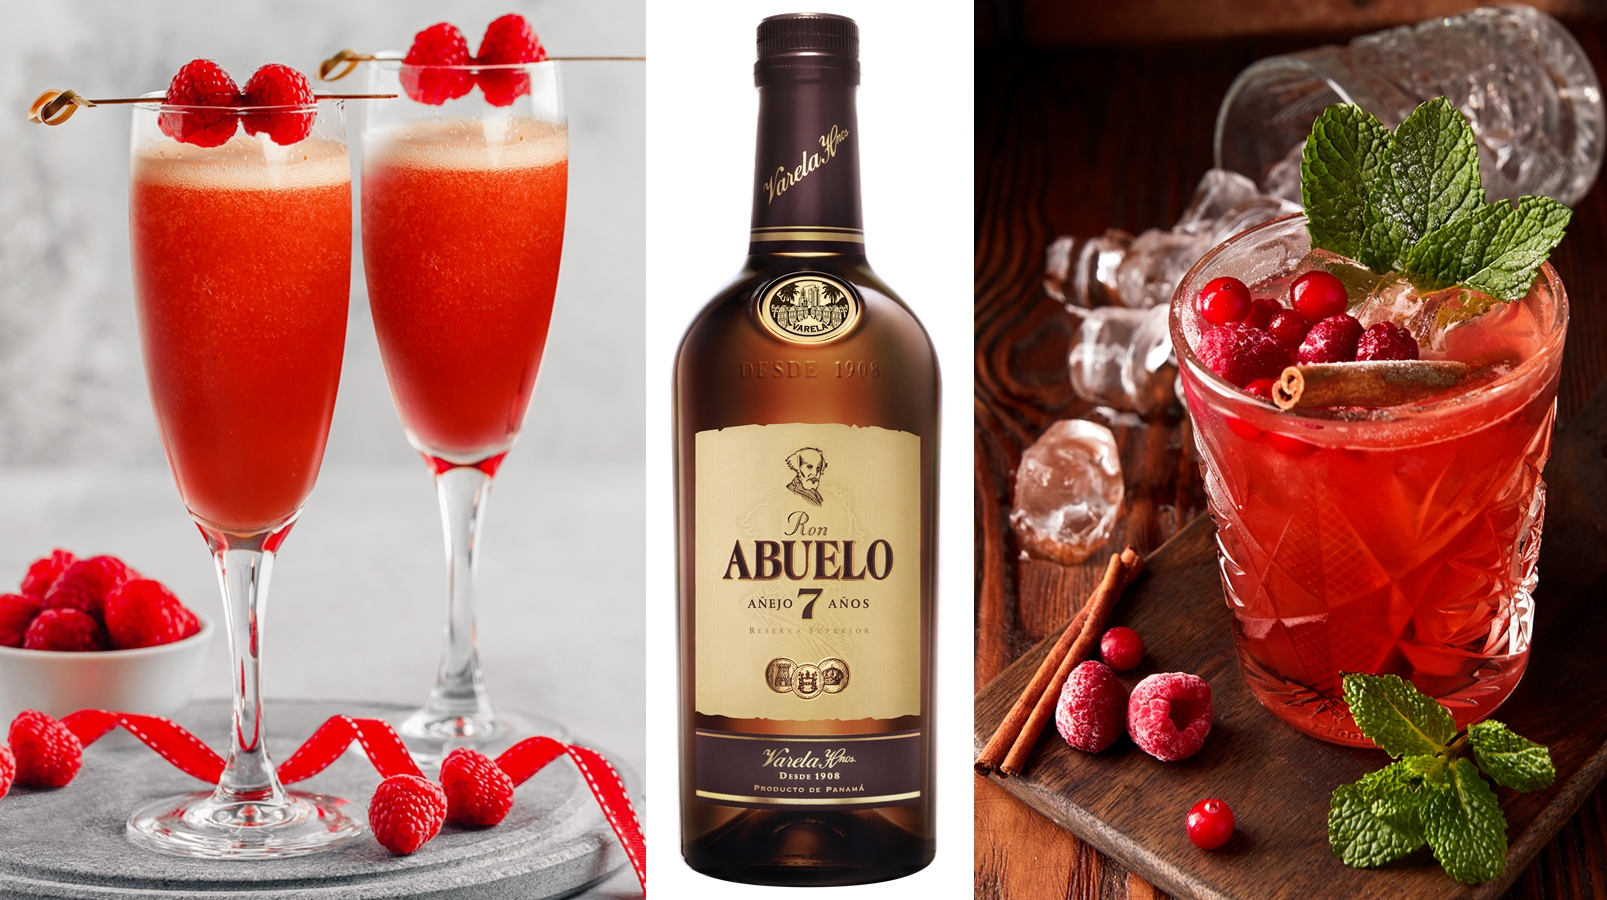 Last Minute Valentine's Day Drink From Ron Abuelo 7 Años